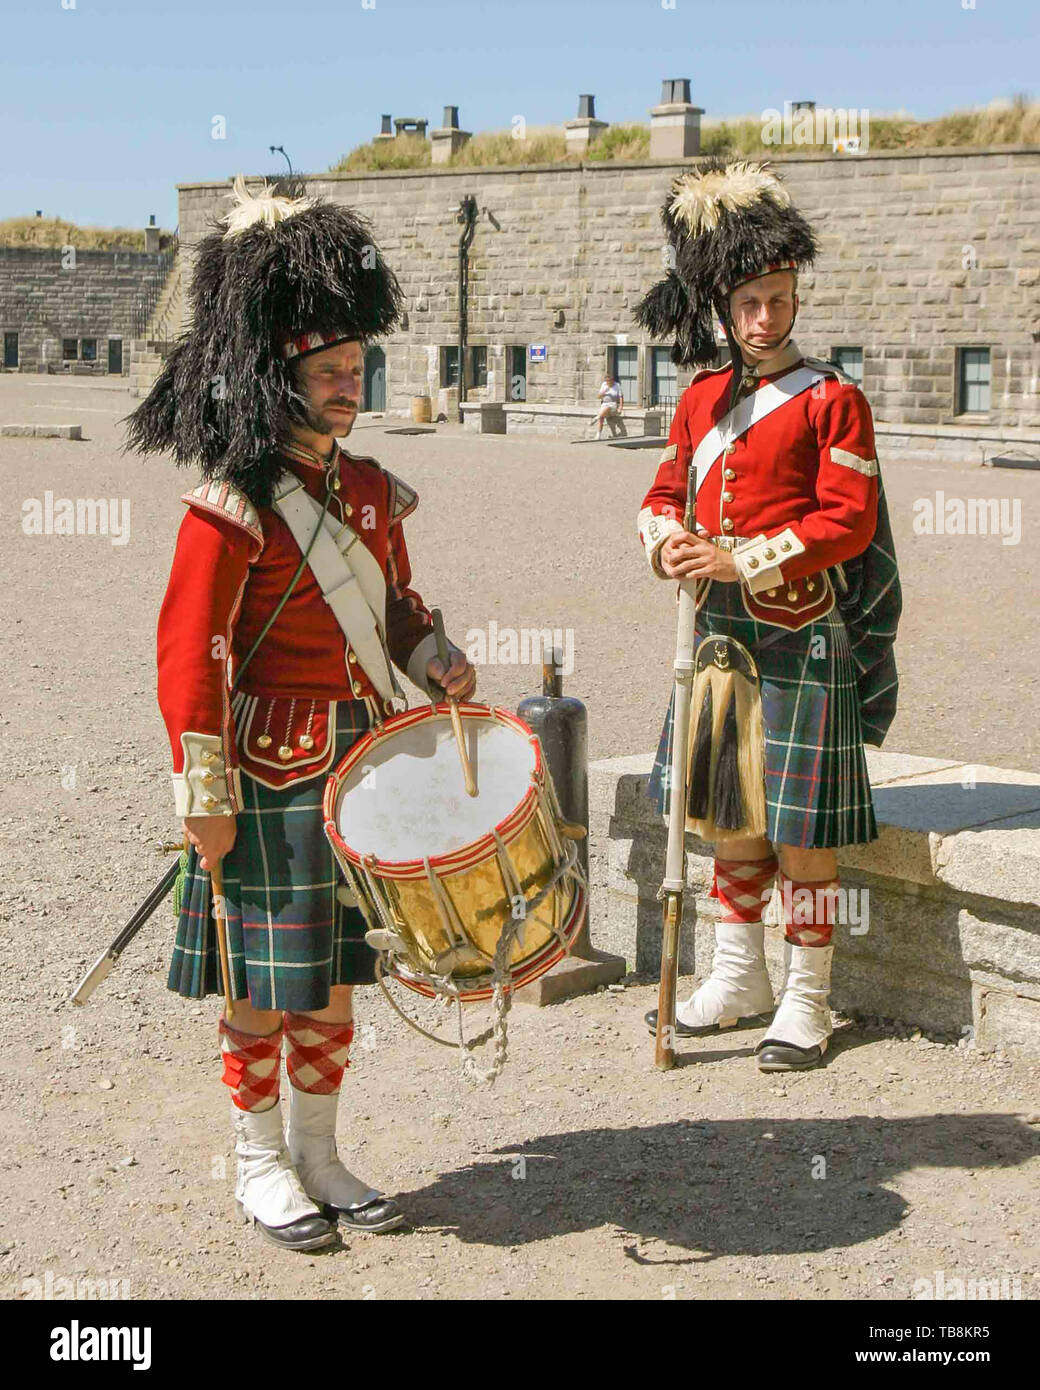 Halifax, Nova Scotia, Canada. 5th Sep, 2005. Re-enactors dressed as soldiers of the 78th Highland Regiment, on Citadel Hill (Fort George), a National Historic Site in Halifax, Nova Scotia. A living history museum, the fort is among the most visited sites in Atlantic Canada. Credit: Arnold Drapkin/ZUMA Wire/Alamy Live News - Stock Image